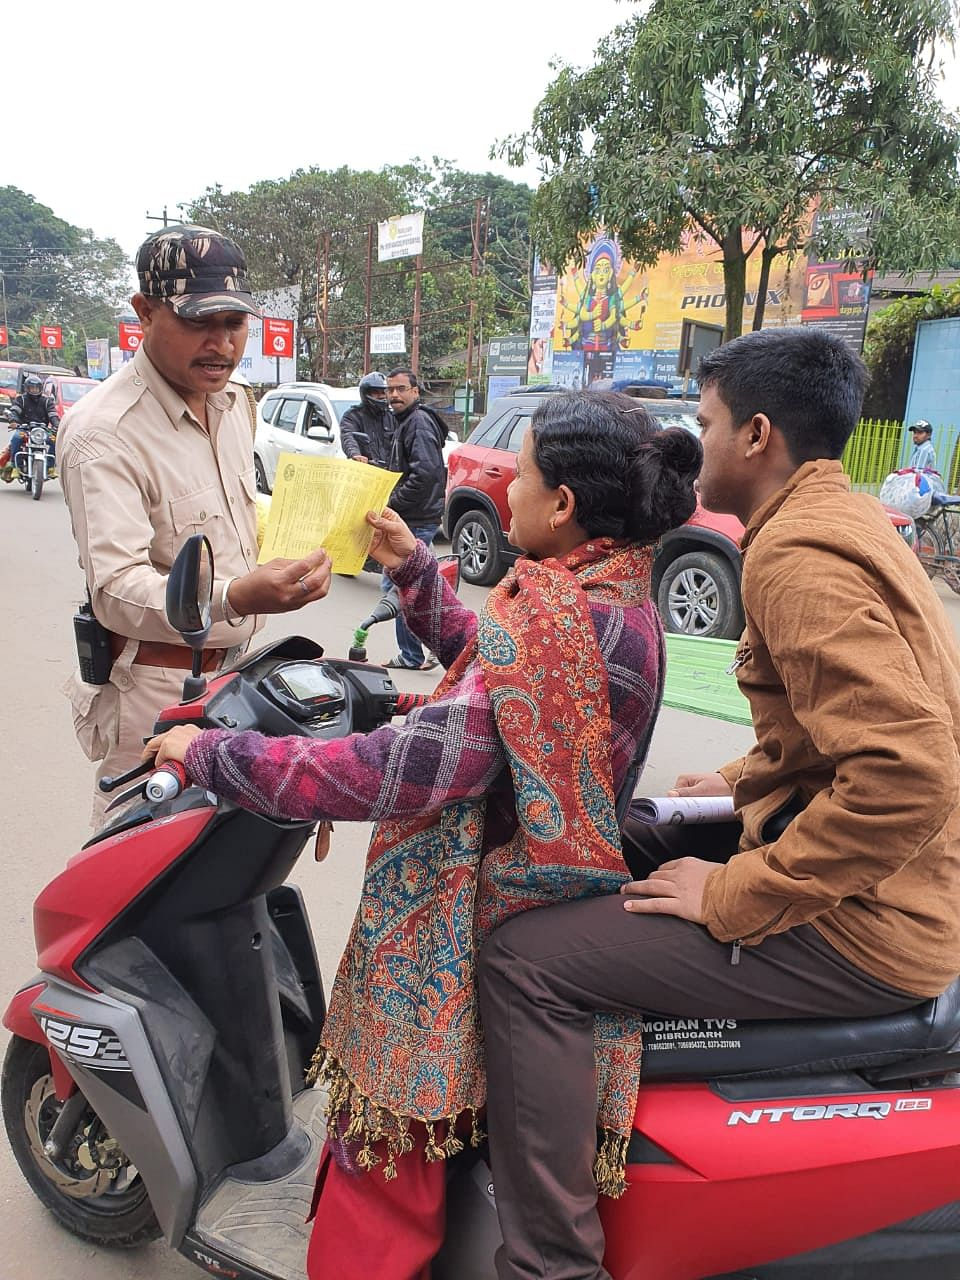 Dibrugarh police distributing leaflets among the riders